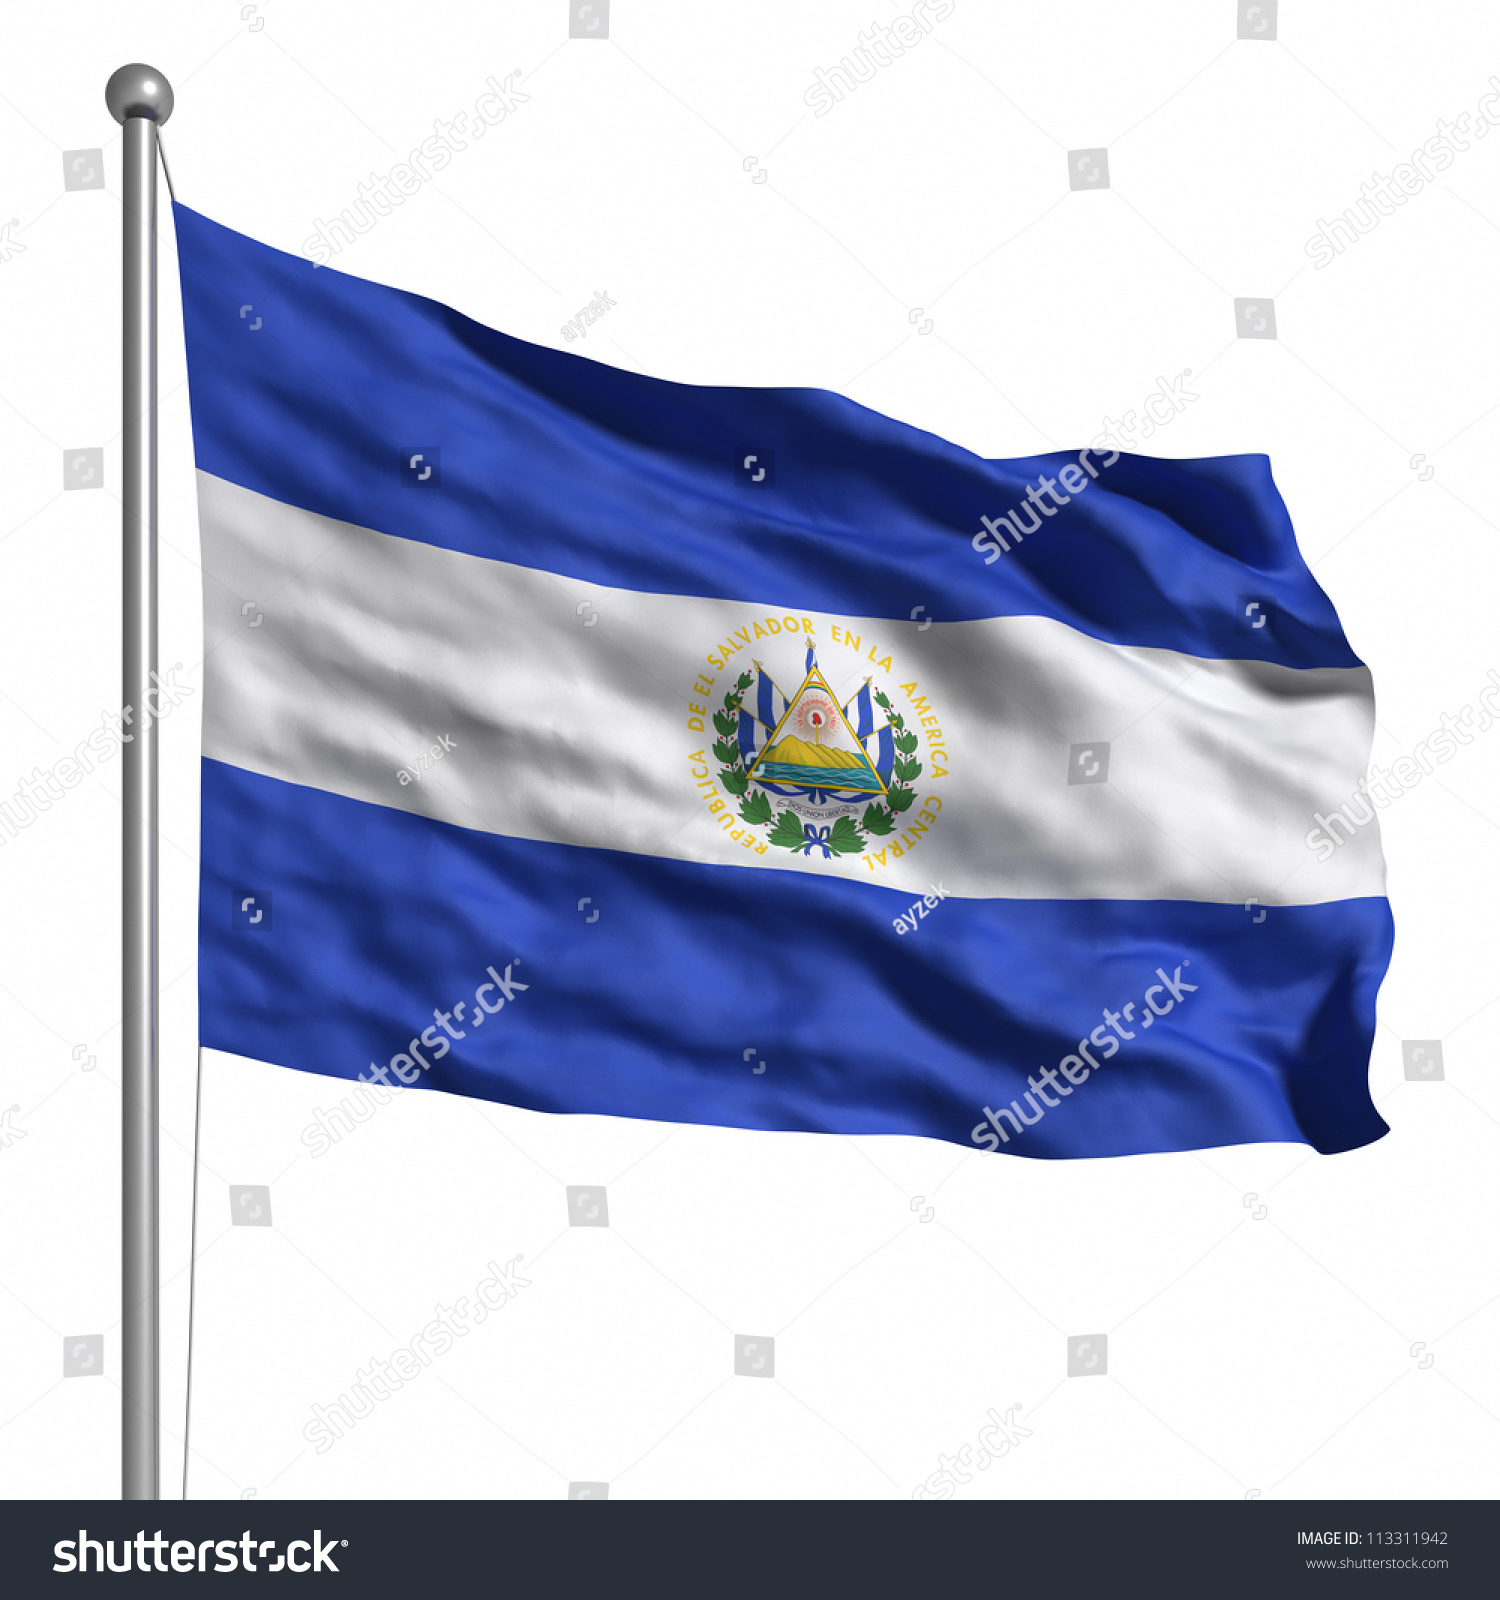 02cfa63c9b0 Flag of El Salvador. Rendered with fabric texture (visible at 100%).  Clipping path included. - Illustration